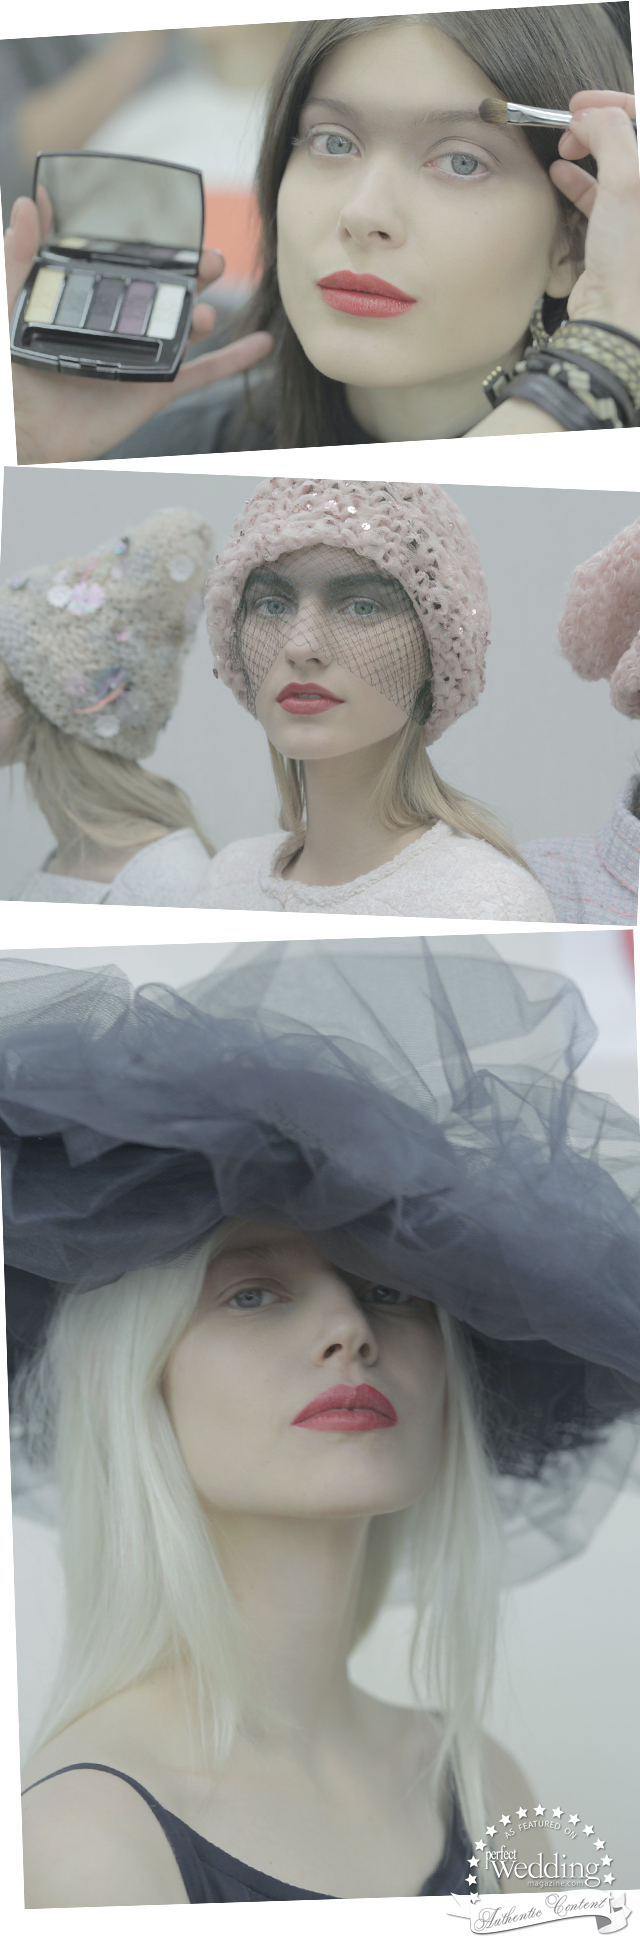 Chanel, Chanel Makeup, Chanel SpringSummer 2015 Haute Couture collection, Perfect Wedding Magazine, Spring Makeup Bridal trends